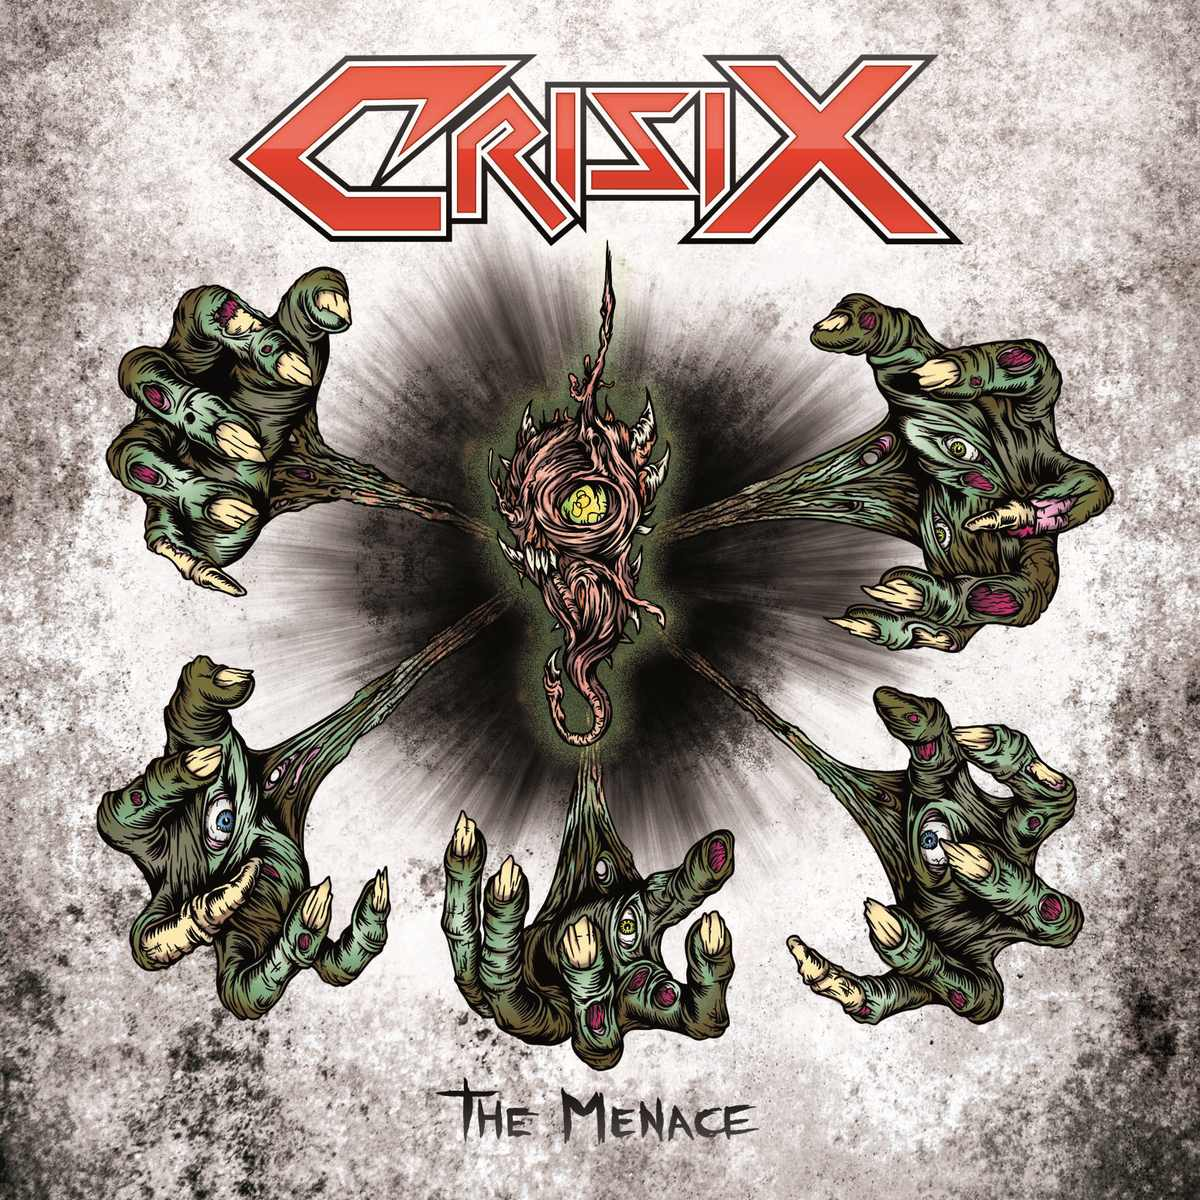 Crisix - The Menace